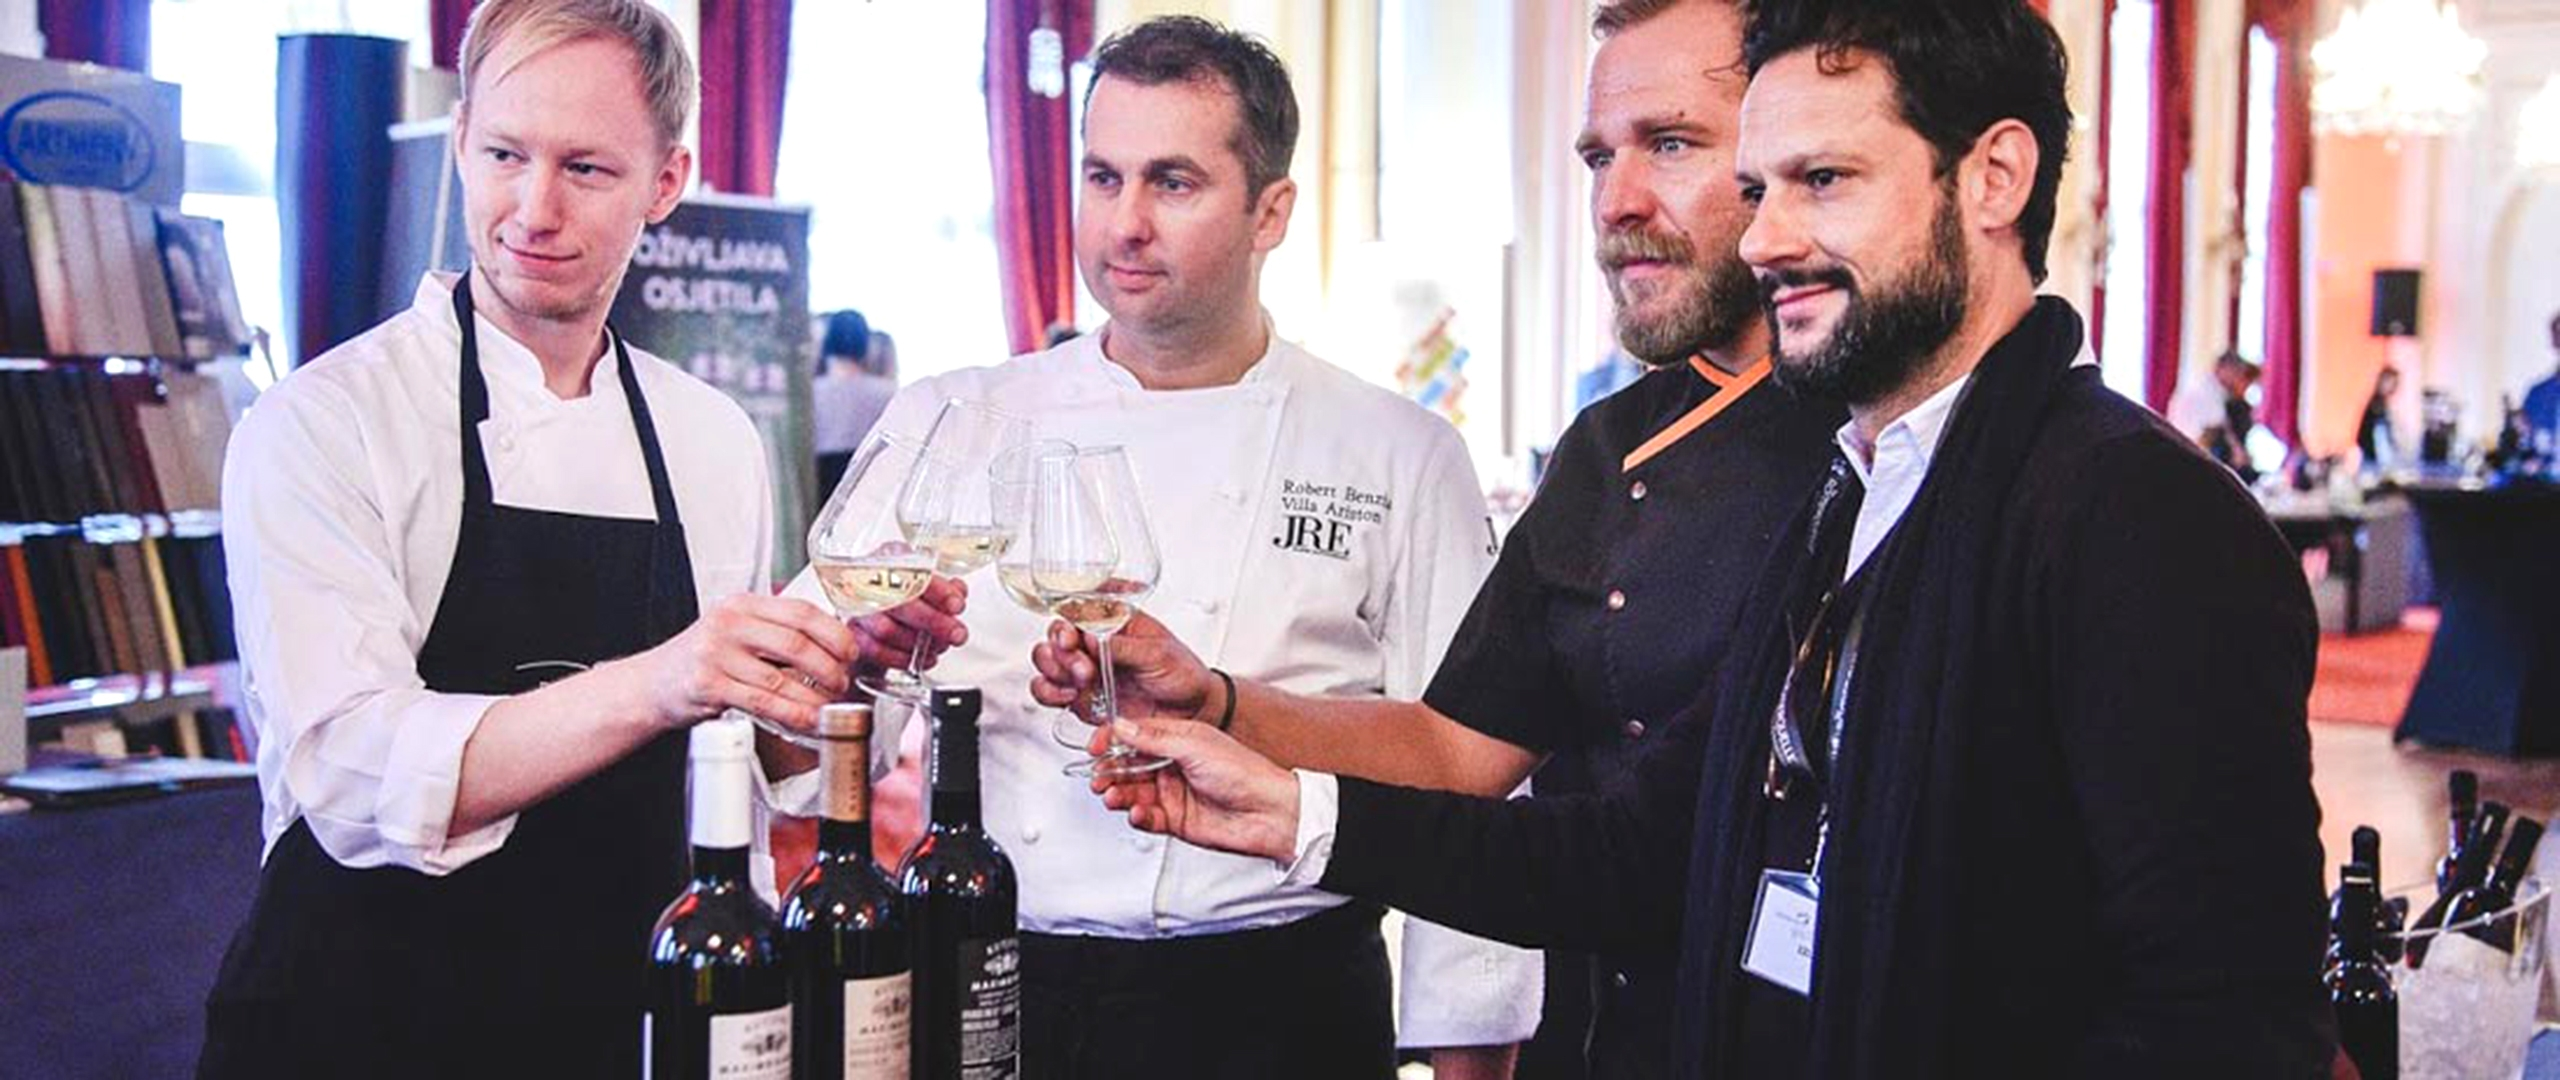 Kutjevo d.d. in Opatija at the Hedonist – Gourmet & Wine Festival